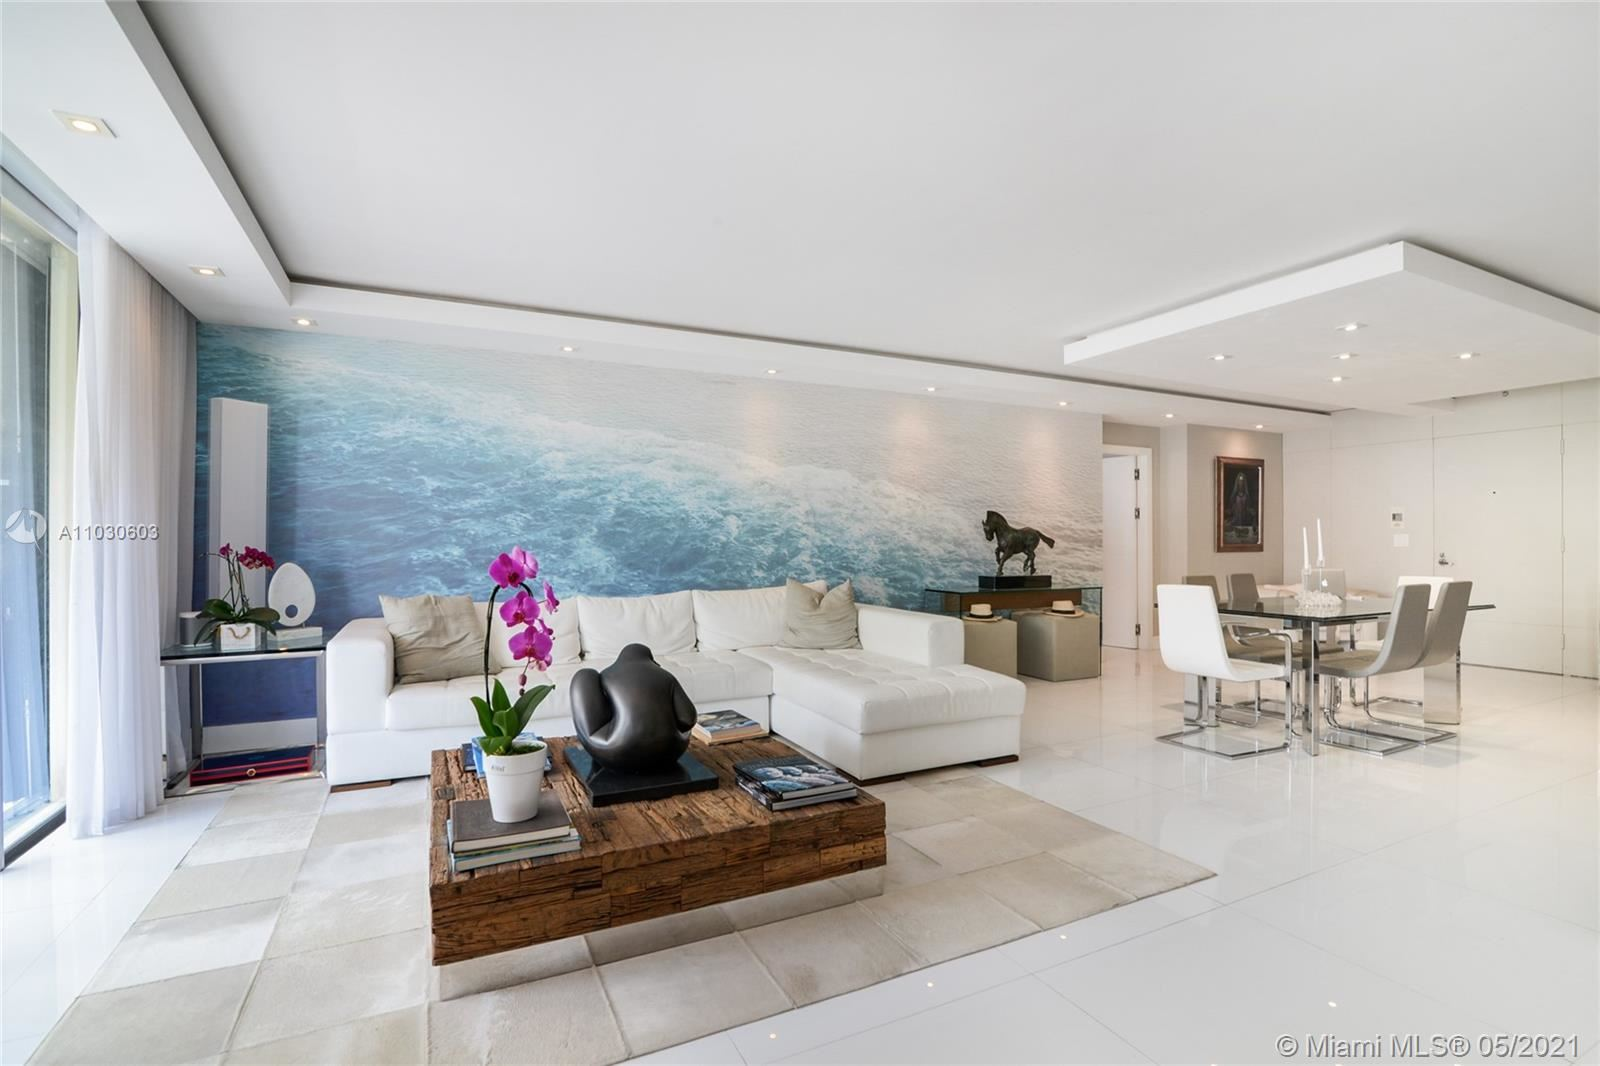 Photo of 9801 Collins Ave #19J, Bal Harbour, FL 33154 (MLS # A11030603)